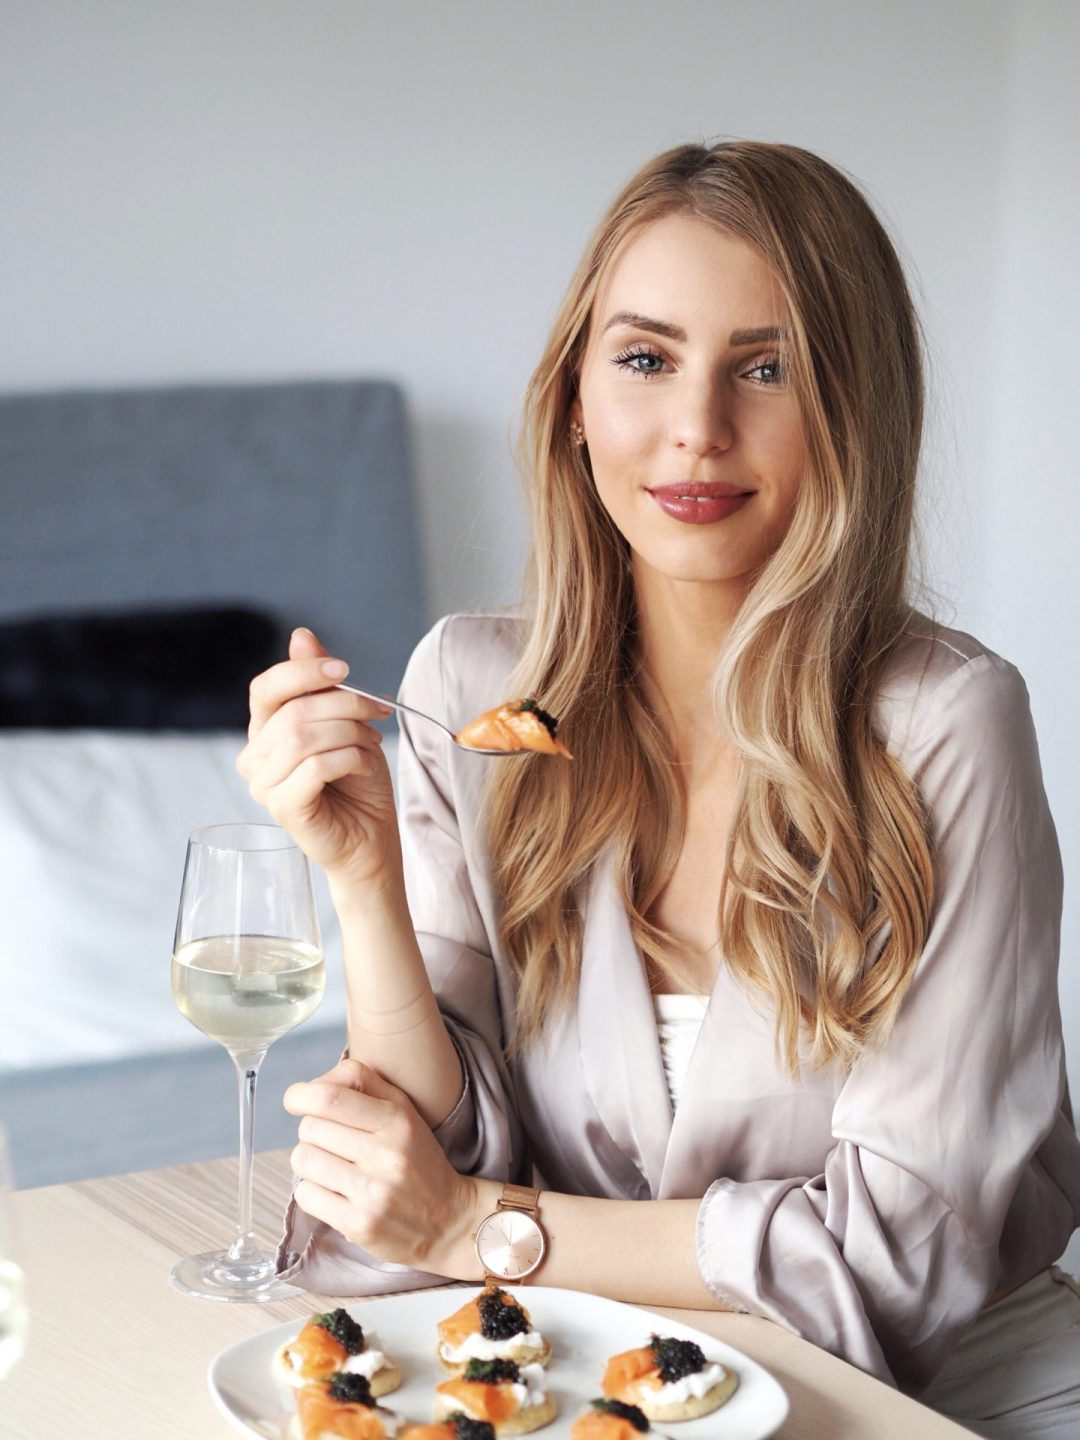 3 Simple Caviar Recipes To WOW Your Dinner Guests (With Attilus Caviar)